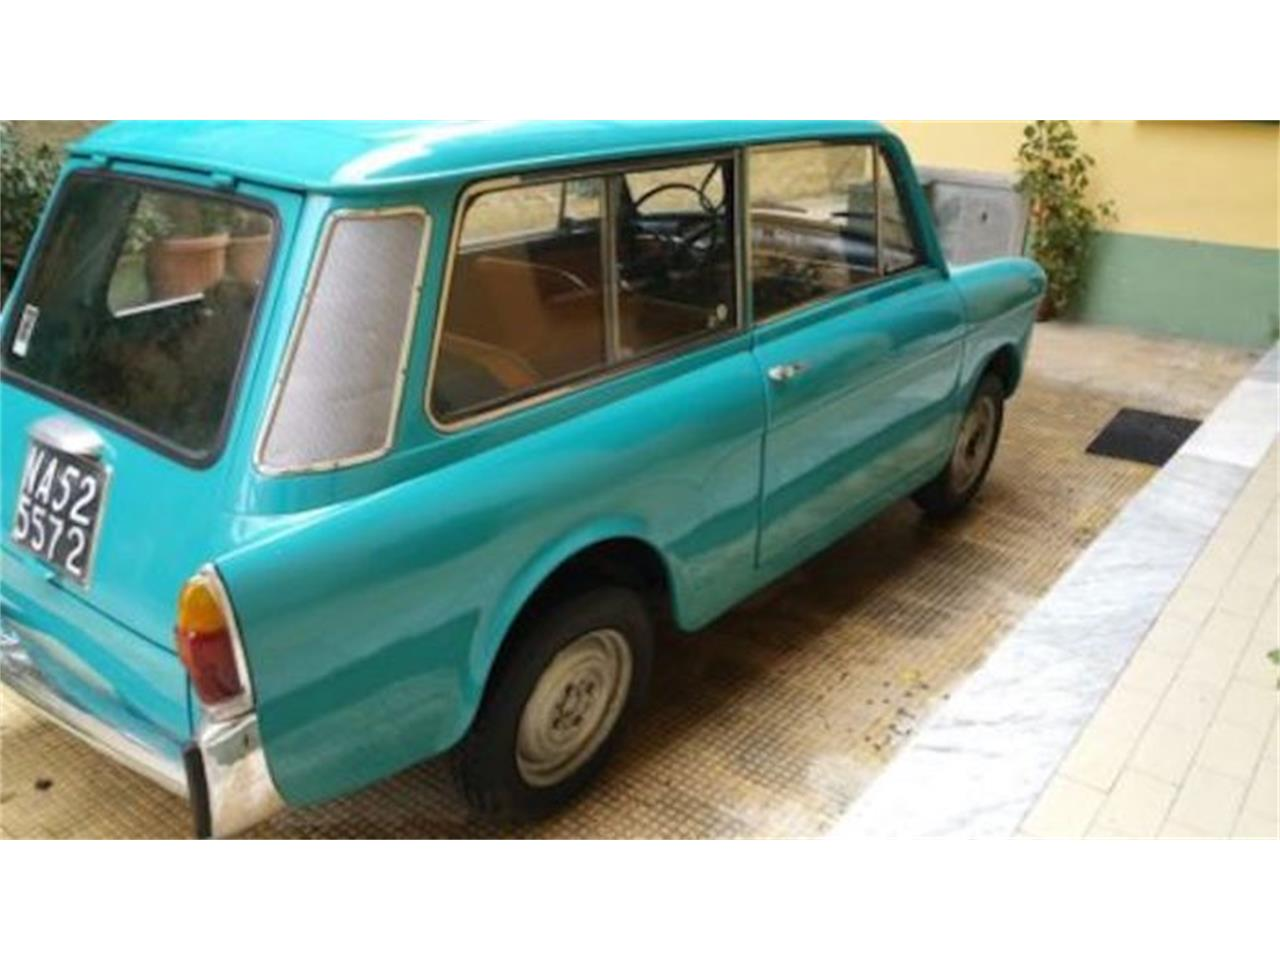 1968 Autobianchi Bianchina Panoramica for sale in Cadillac, MI – photo 2